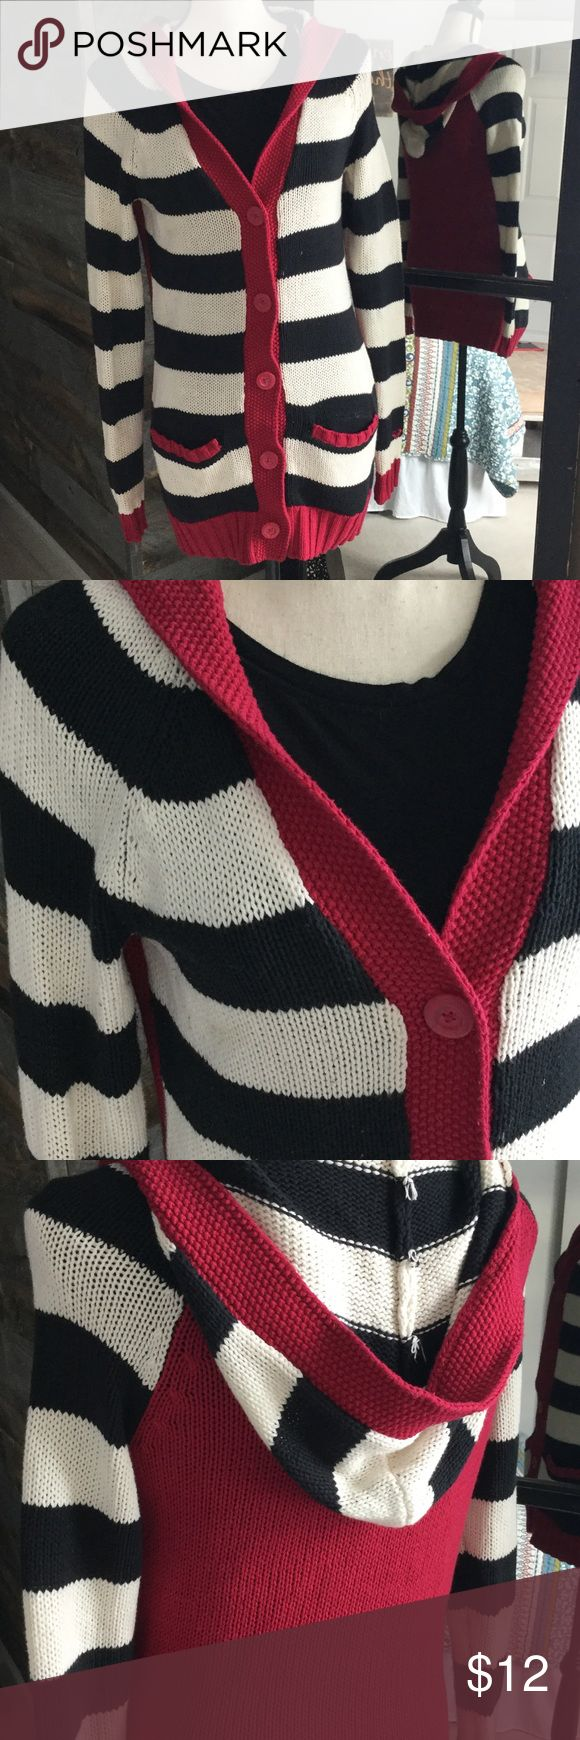 Roxy cardigan. Roxy cardigan, long cut. Worn but in good shape still. The red is more of a maroon red than Apple red. Roxy Sweaters Cardigans